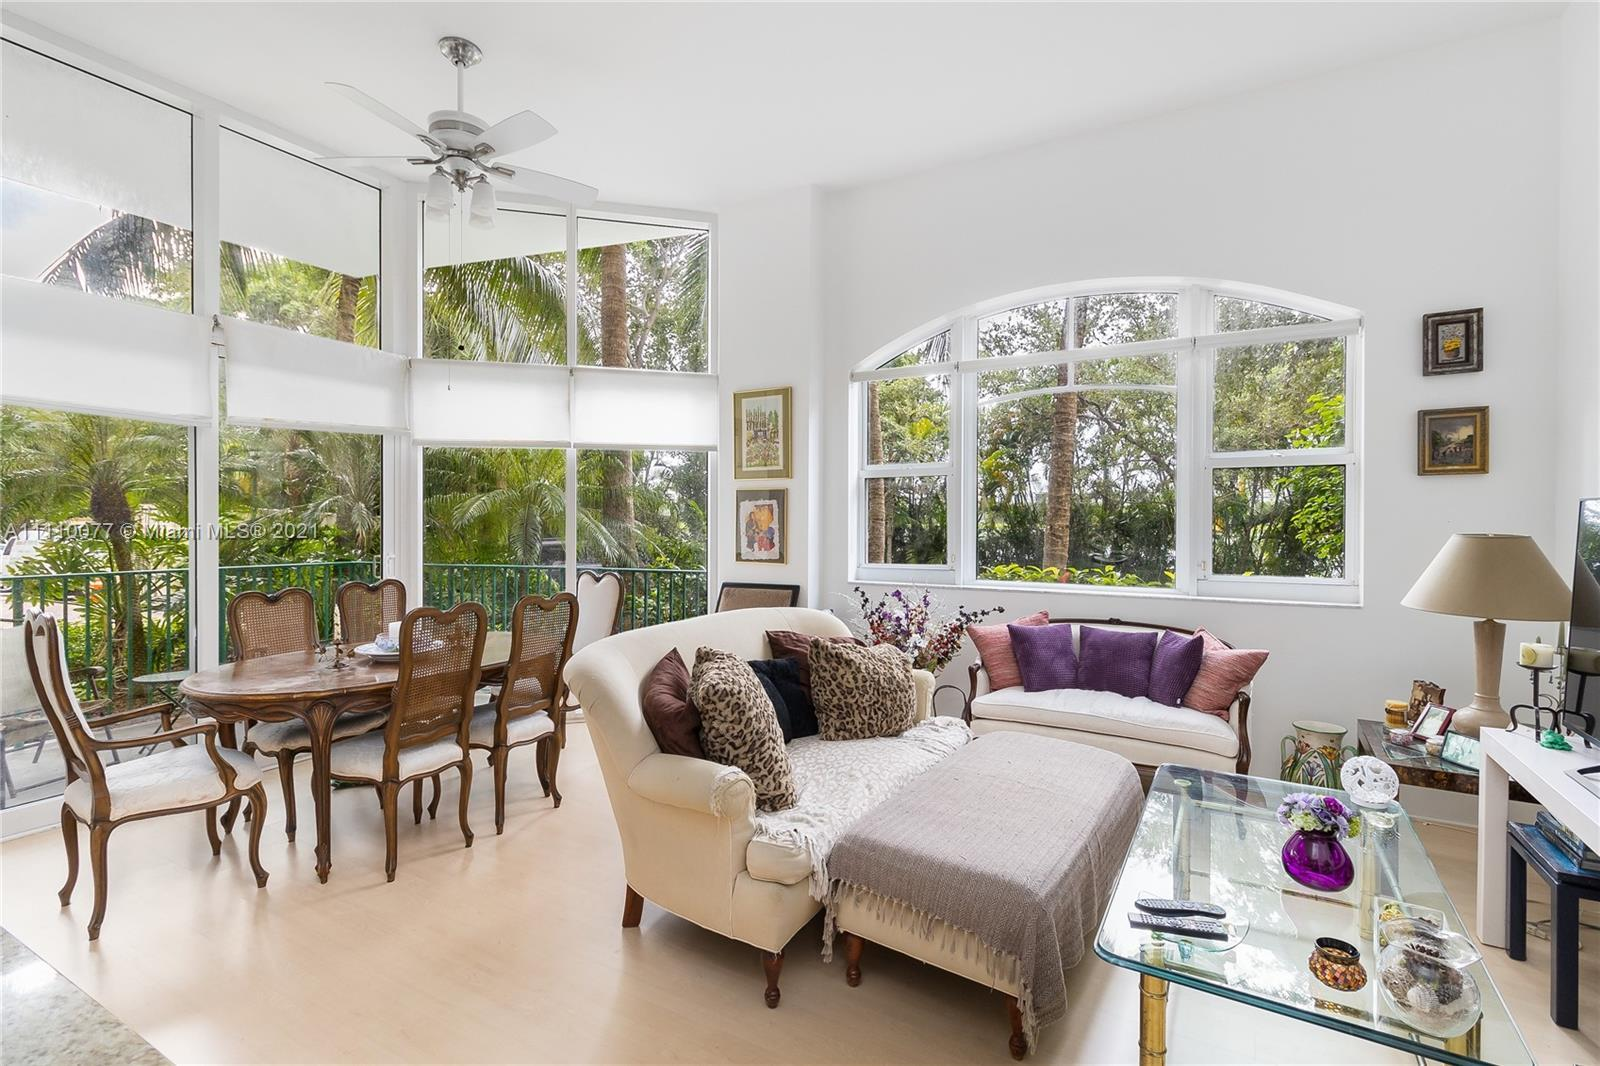 This condo feels like you're living in a house! Incredible open living space with 14ft ceilings and